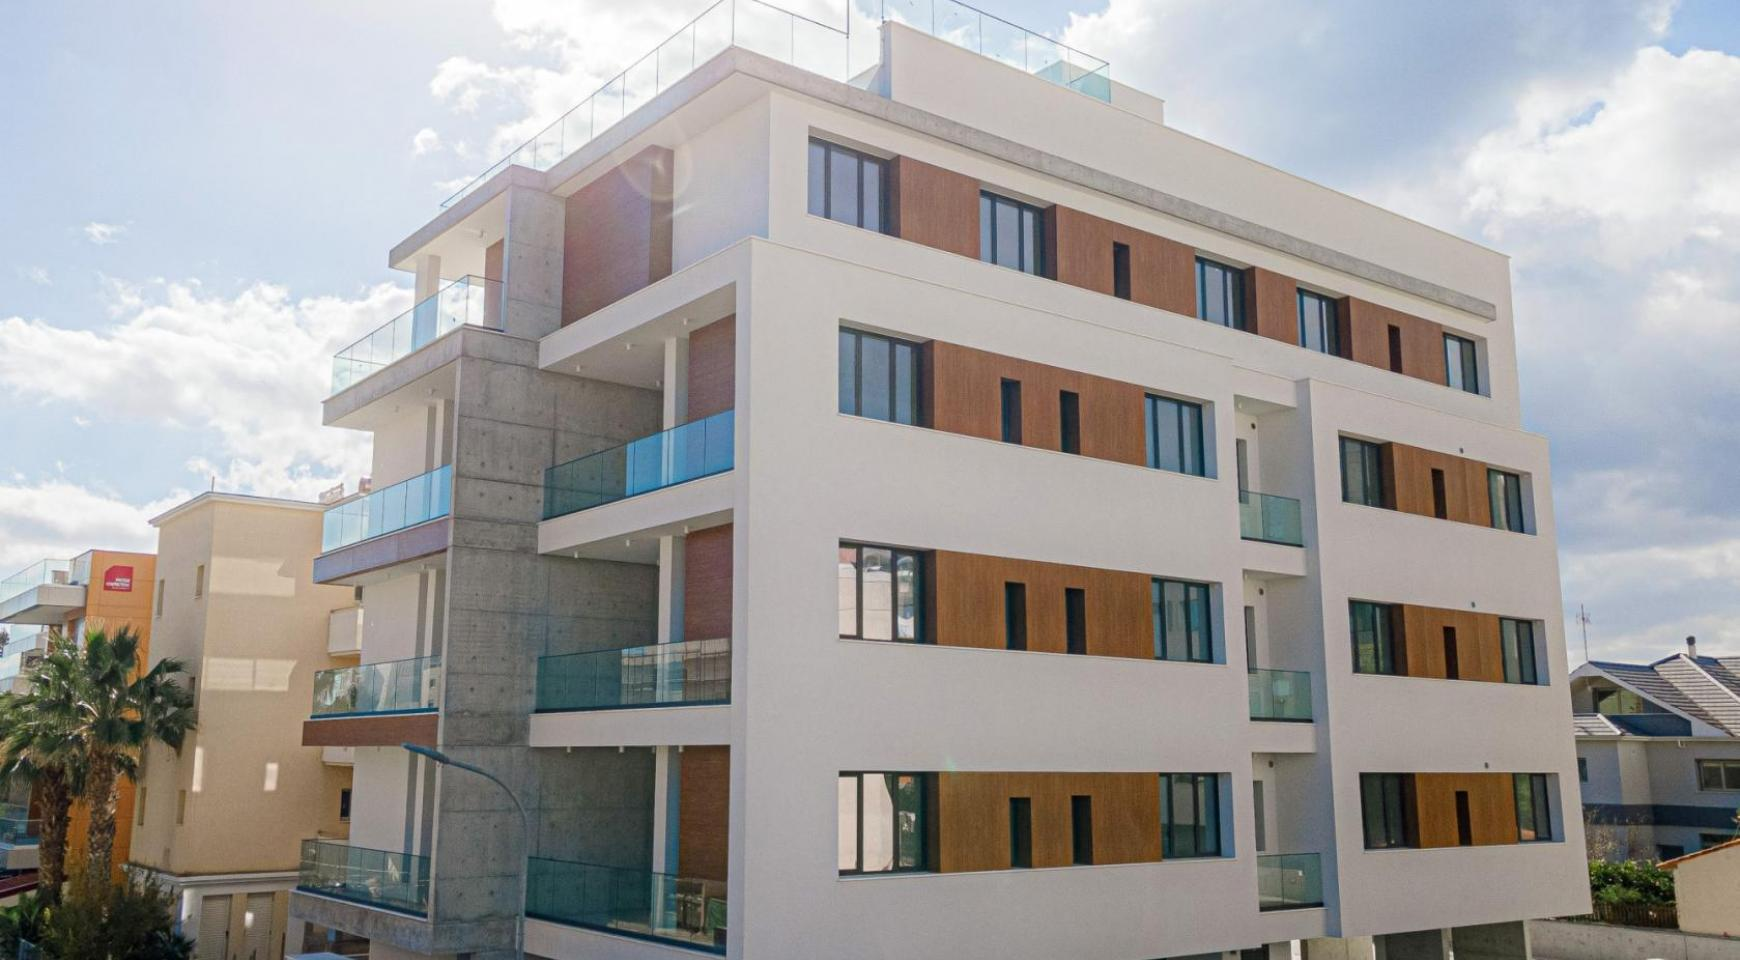 HORTENSIA RESIDENCE, Apt. 101. 2 Bedroom Apartment  in a New Complex near the Sea - 1